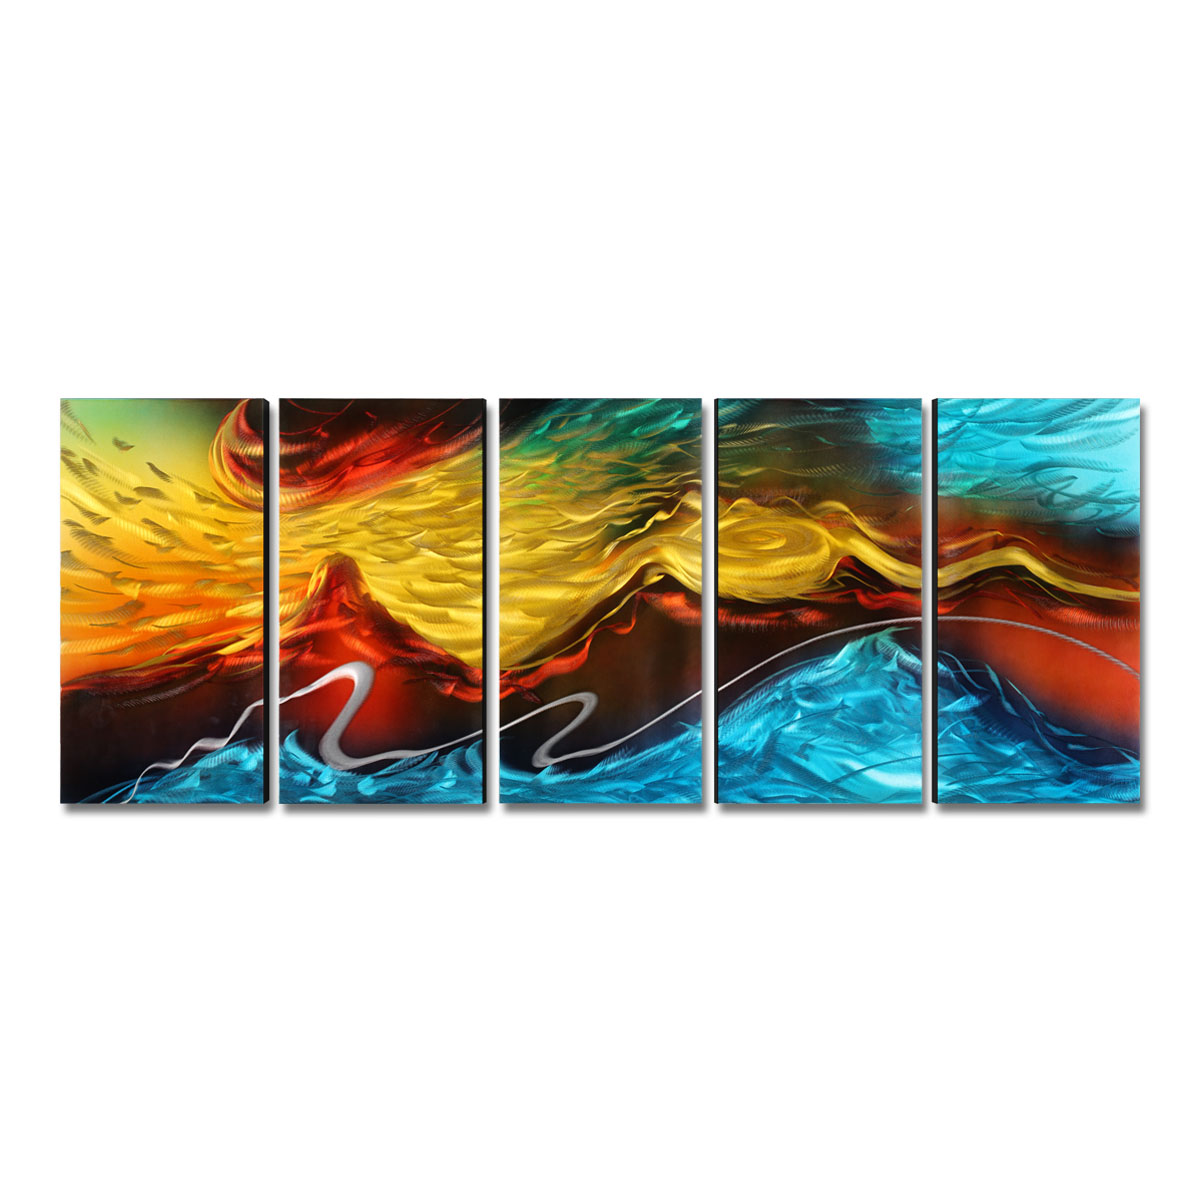 Fire and Ice Modern Painting Abstract Wall Art Home Decoration 5 Panels Multicolor Home Decor Home Decoration AccessoriesFire and Ice Modern Painting Abstract Wall Art Home Decoration 5 Panels Multicolor Home Decor Home Decoration Accessories